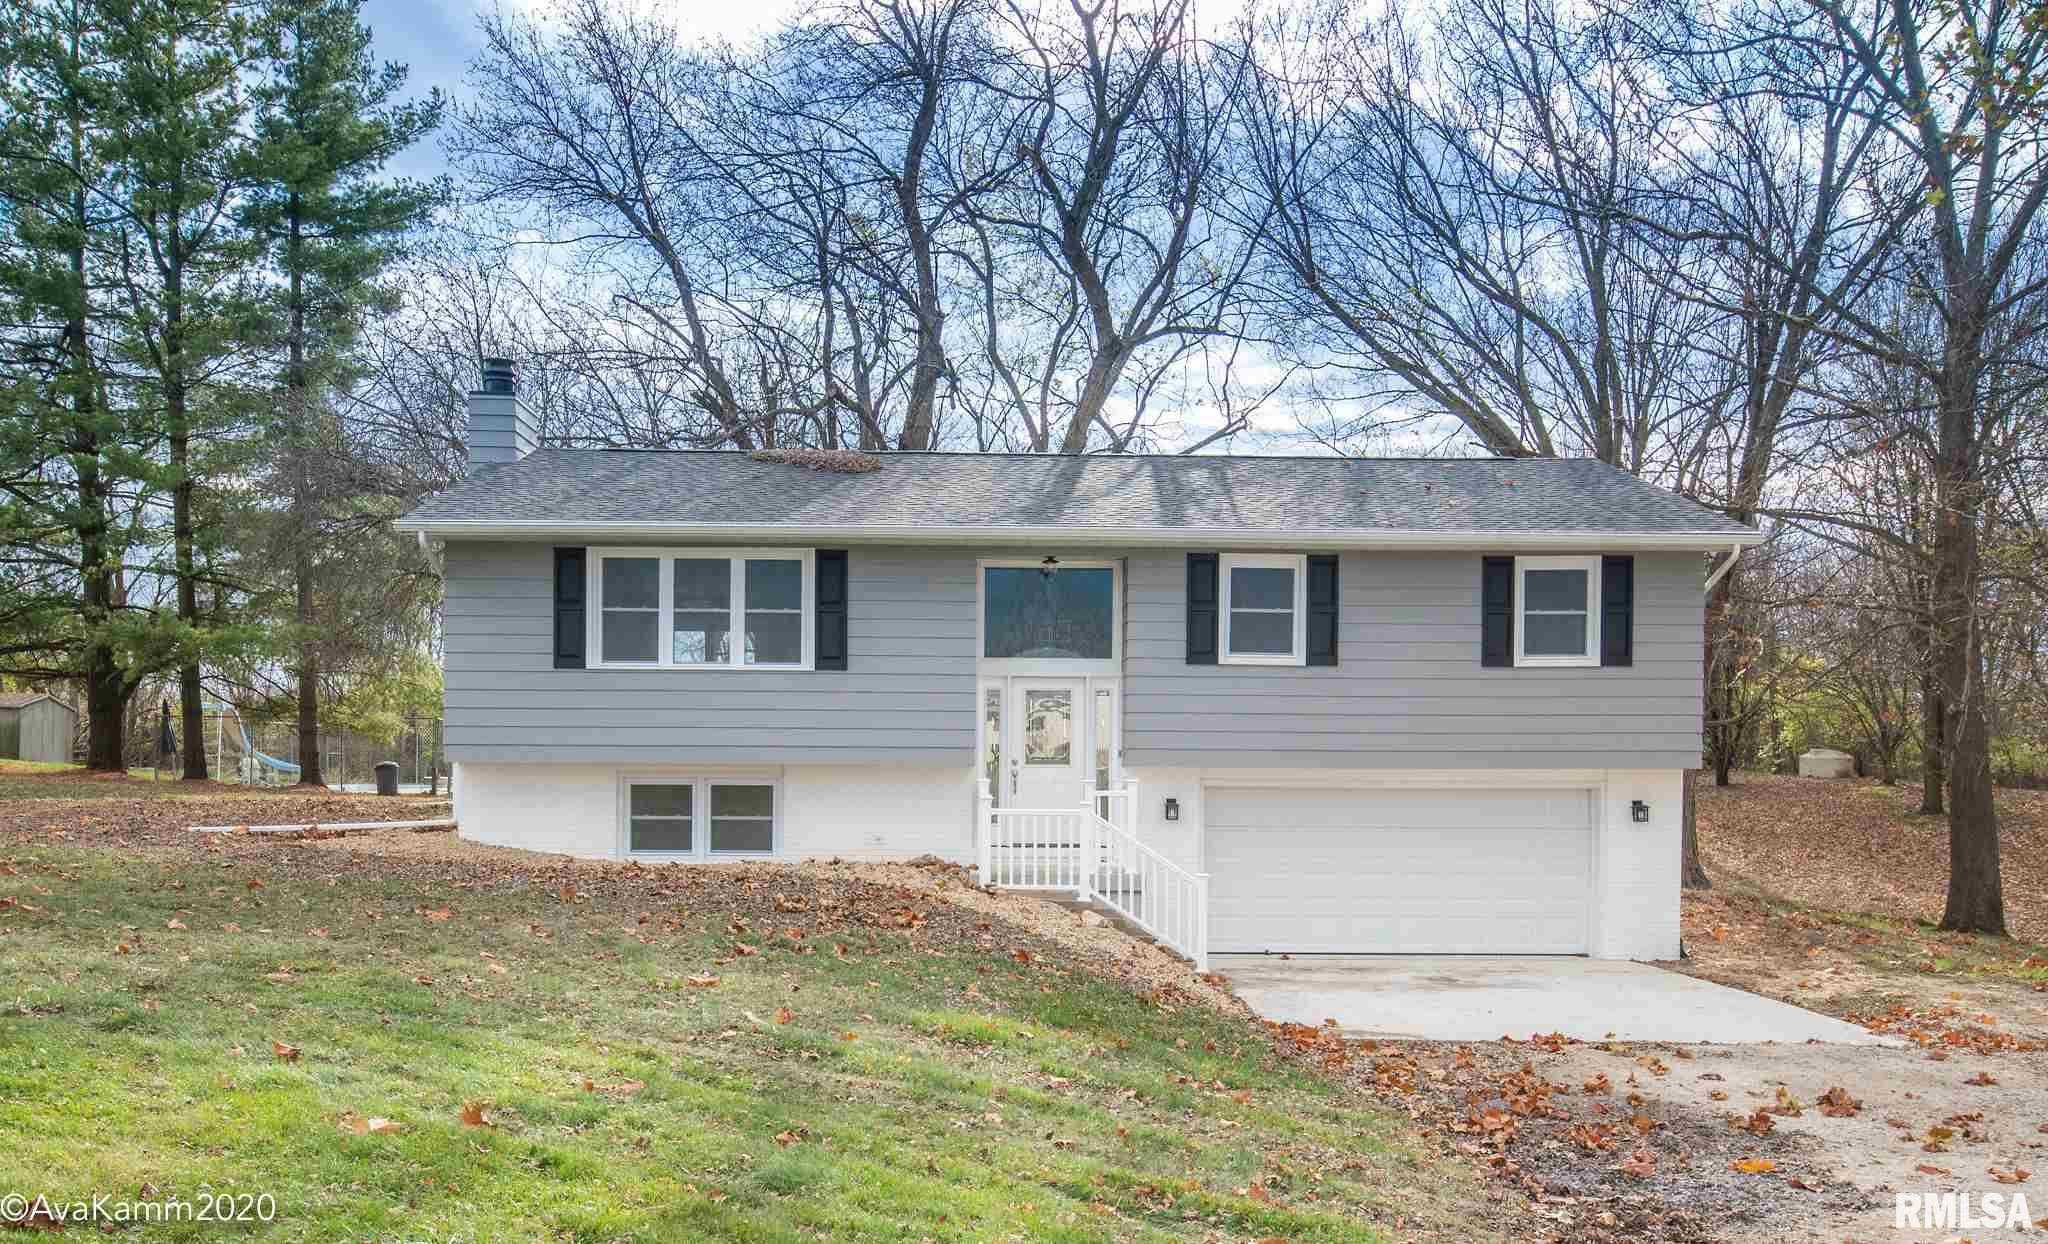 $214,900 - 3Br/3Ba -  for Sale in Rolling Hills, Hanna City